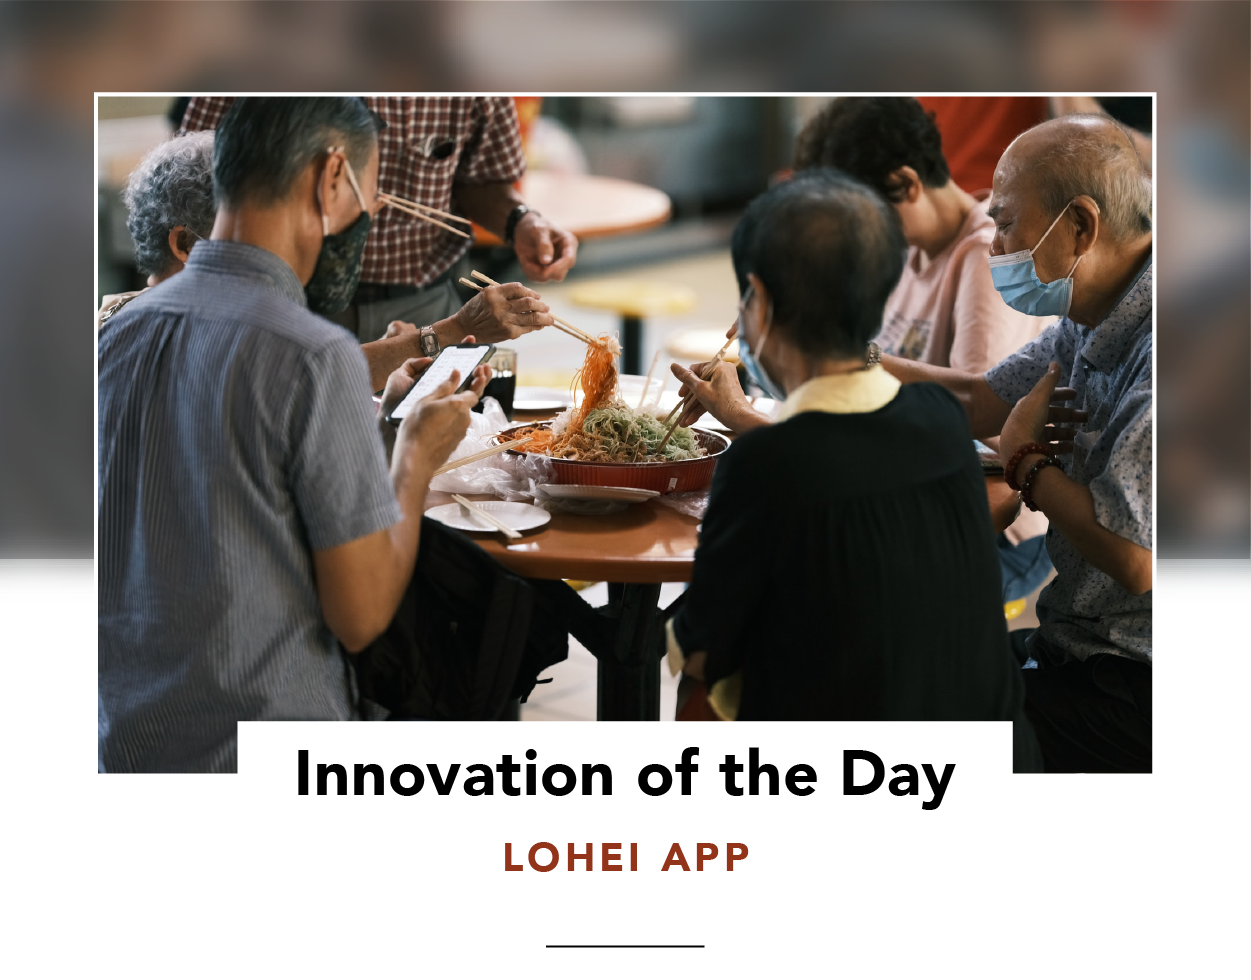 People at a table, tossing food on a communal platter